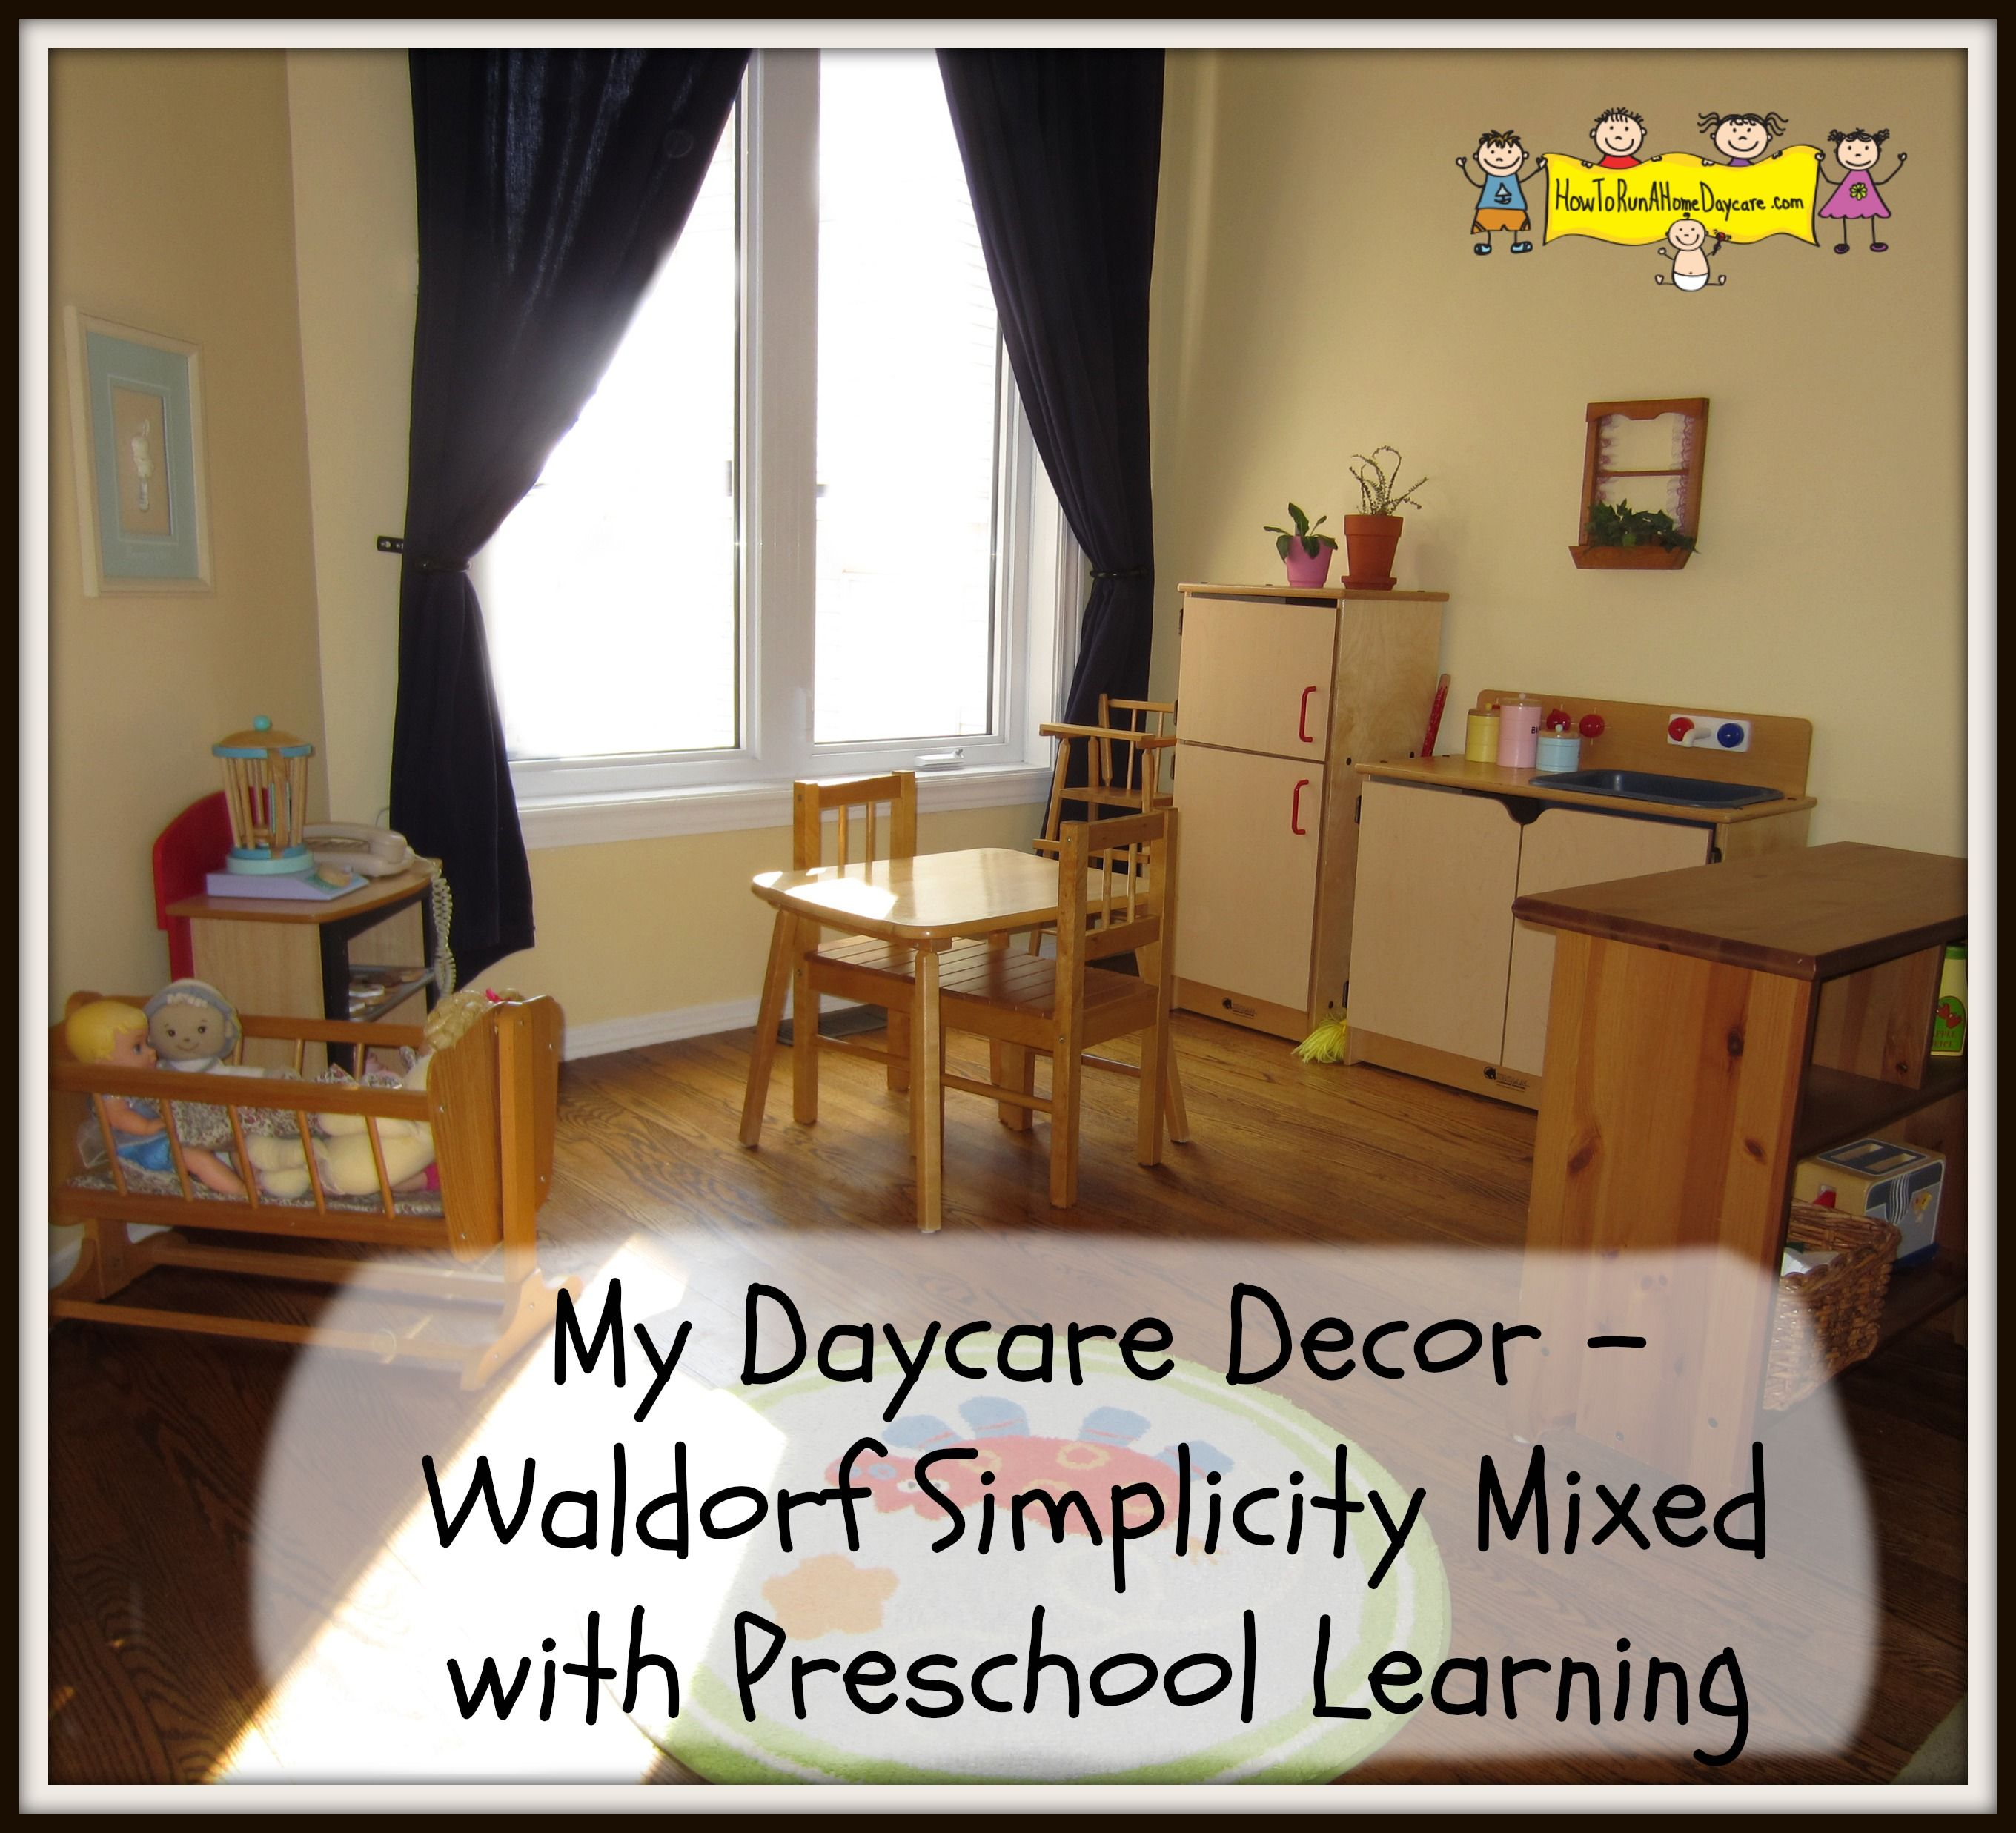 My Daycare Decor -Waldorf Simplicity Mixed With Preschool